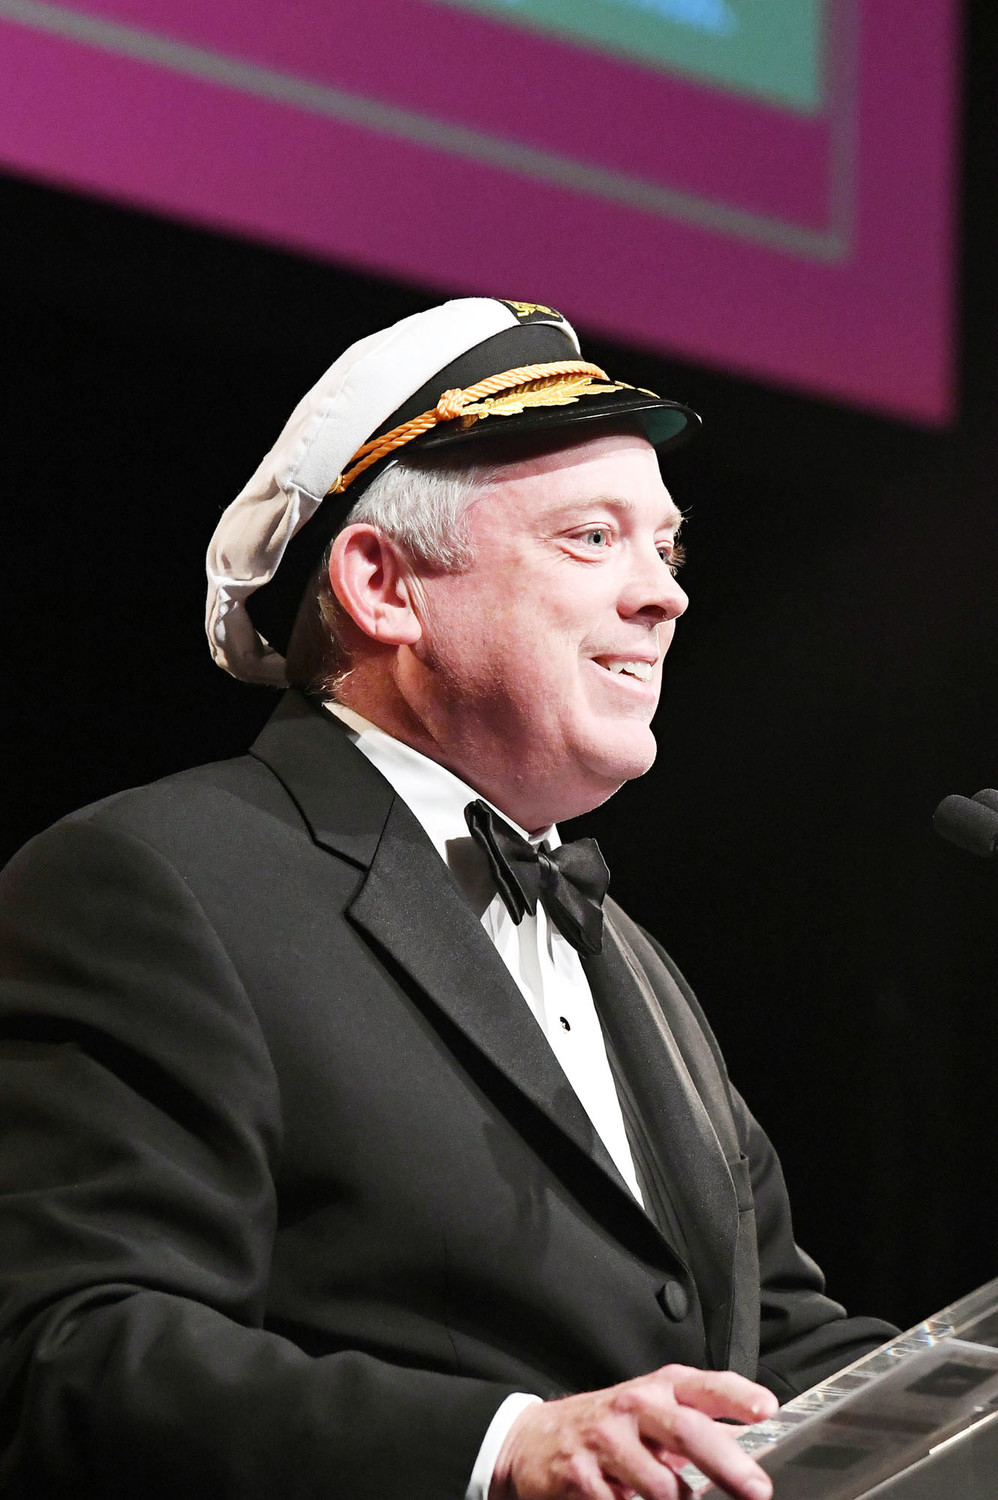 LaRue gets into the spirit of the occasion by wearing a nautical cap as he conducts a fund-raiser for a cruise.